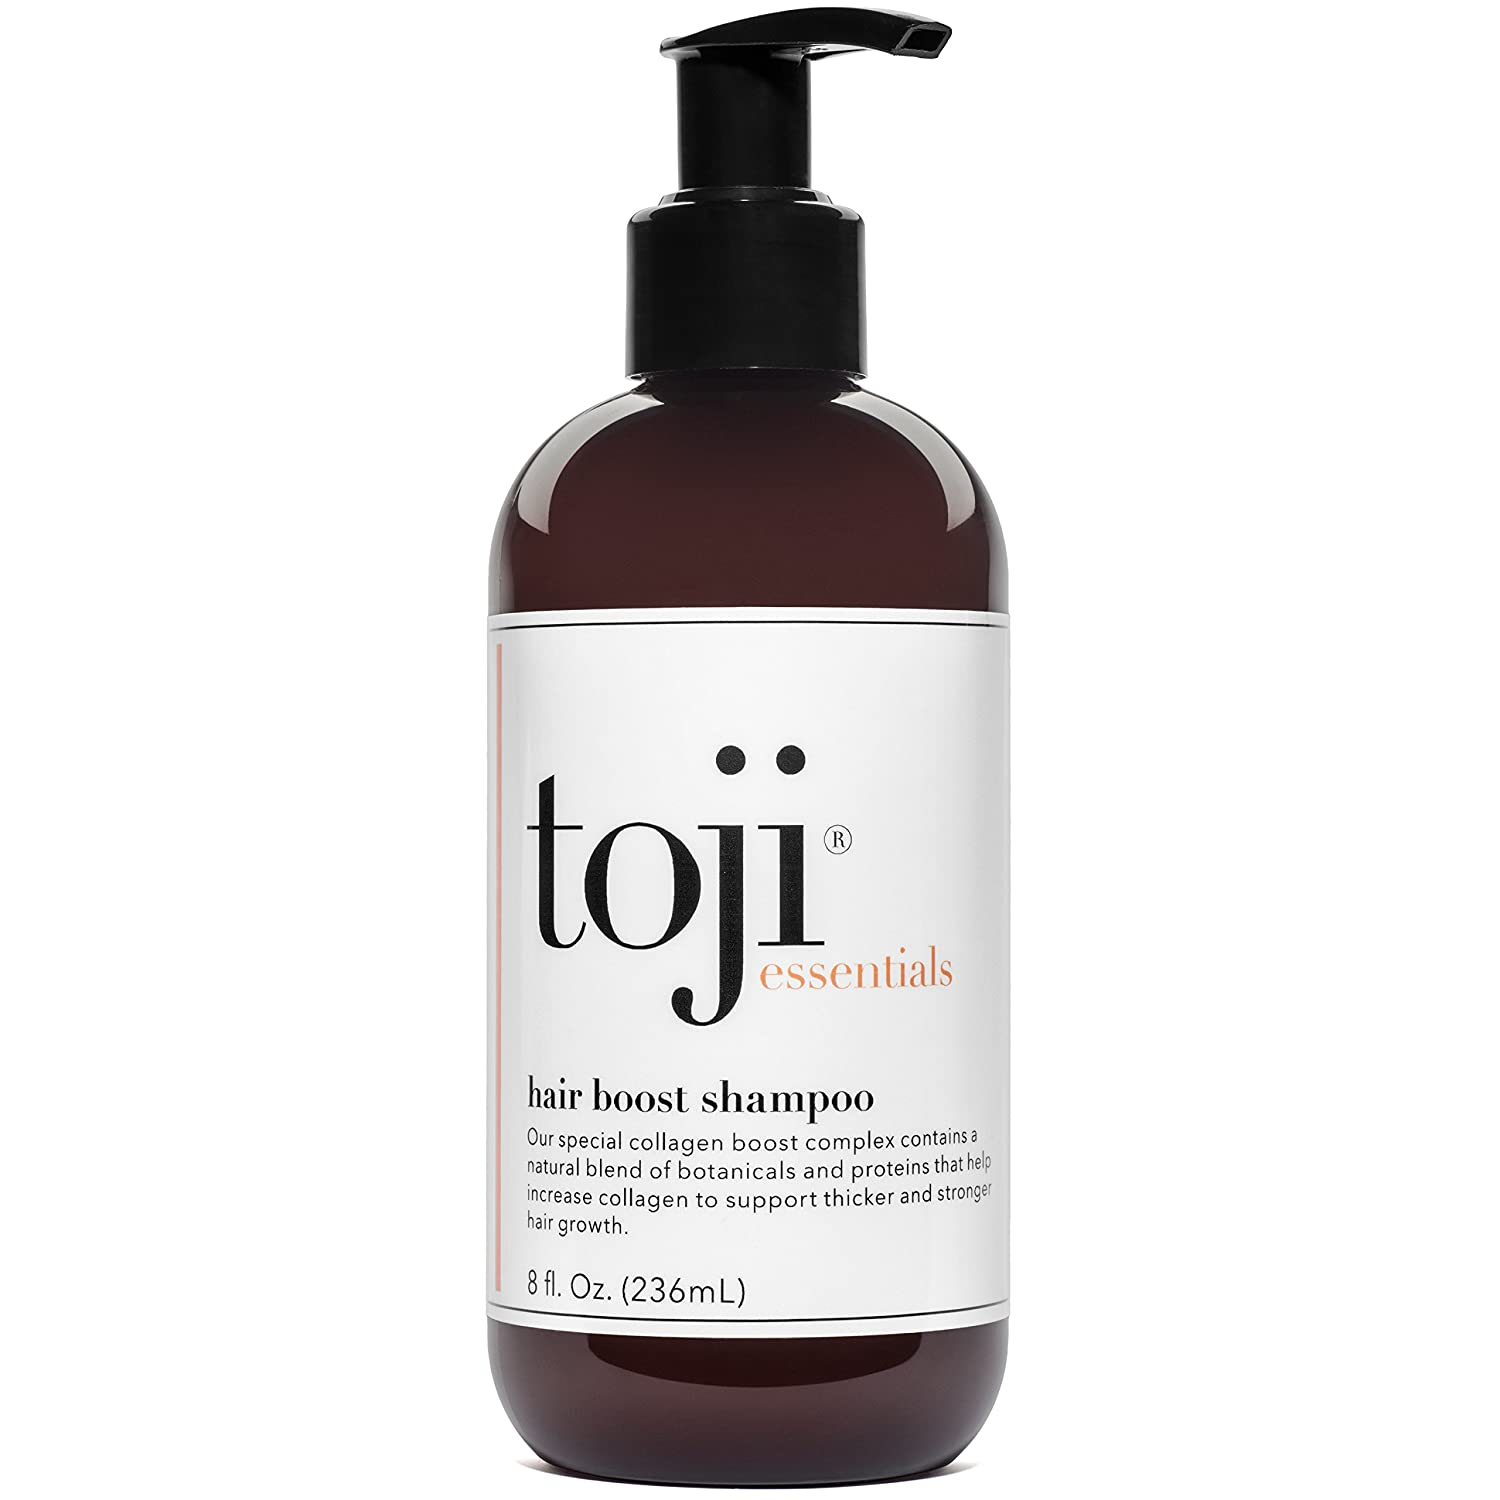 Toji Essentials: Hair Boost Shampoo Online limited product SEAL limited product